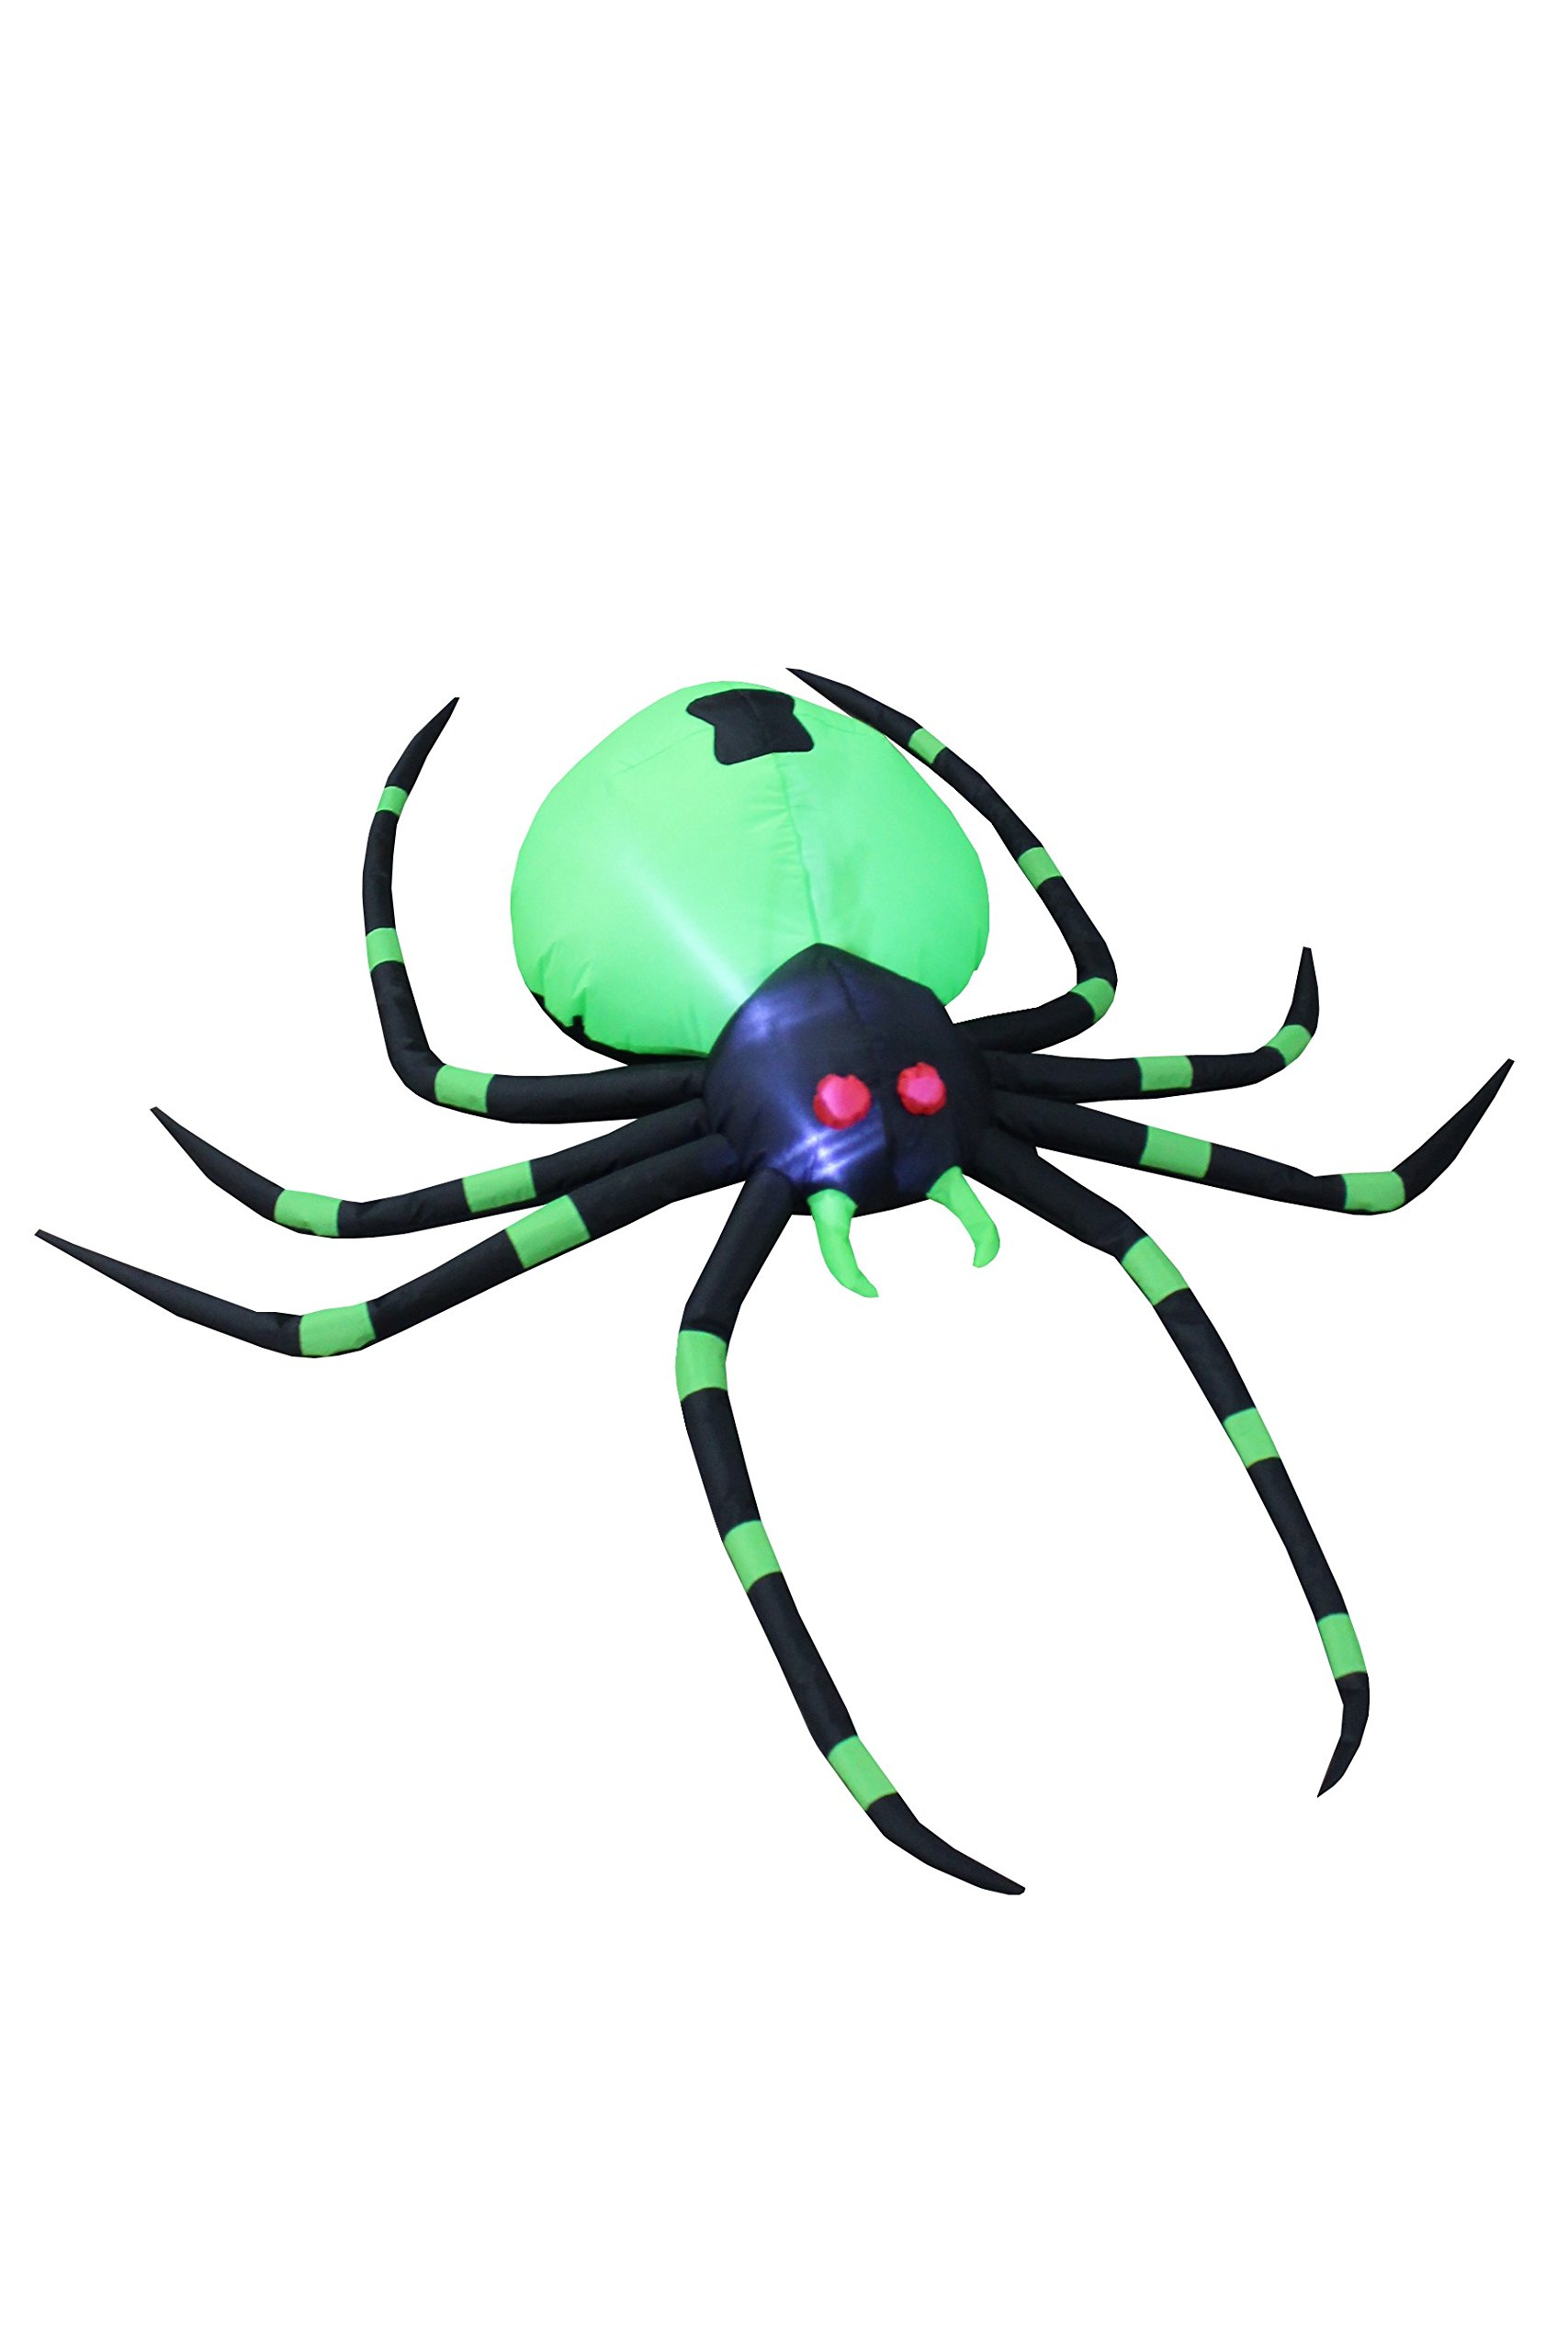 BZB Goods 6 Foot Long Halloween Inflatable Black Green Spider LED Lights Decor Outdoor Indoor Holiday Decorations, Blow up Lighted Yard Decor, Giant Lawn Inflatables Home Family Outside by BZB Goods (Image #2)